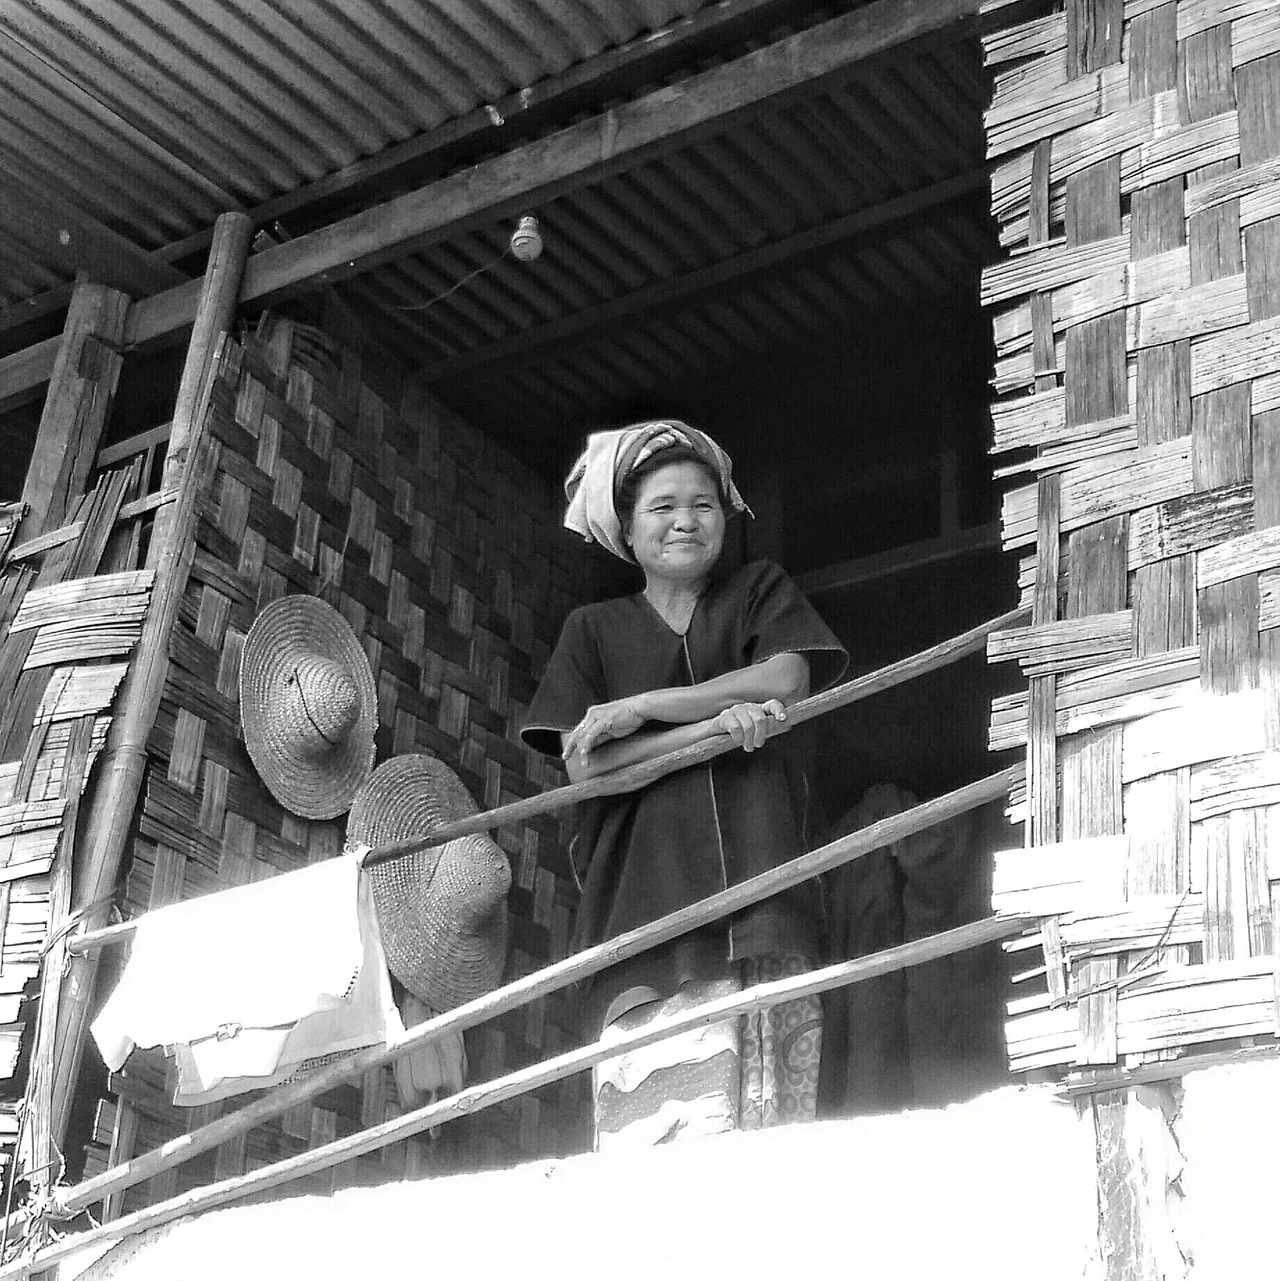 People Women Myanmar Myanmarstreetphotography Burma Burmeseethnic Burmese Village Villagelife Travel Destinations Travelingtheworld  Amazing Place People And Places People And Culture Otherculture One PersonTravelphotography One Woman Only Blackandwhite Photography Blackandwhite Black And White Collection  Blackandwhite Portrait